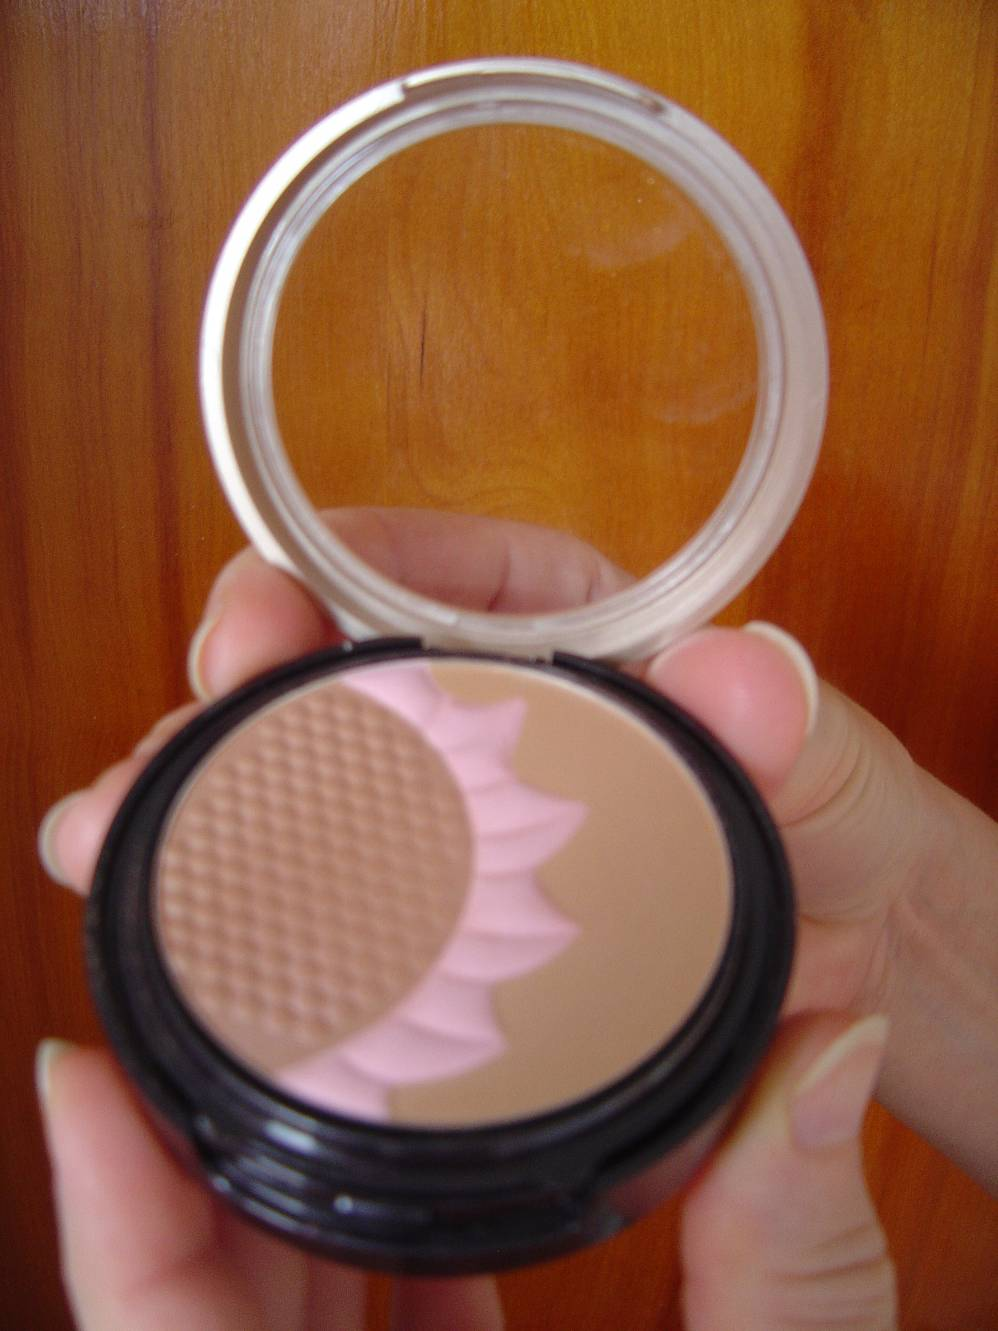 Sally Hansen Natural Beauty by Carmindy Sun Glow Powder Bronzer.jpeg